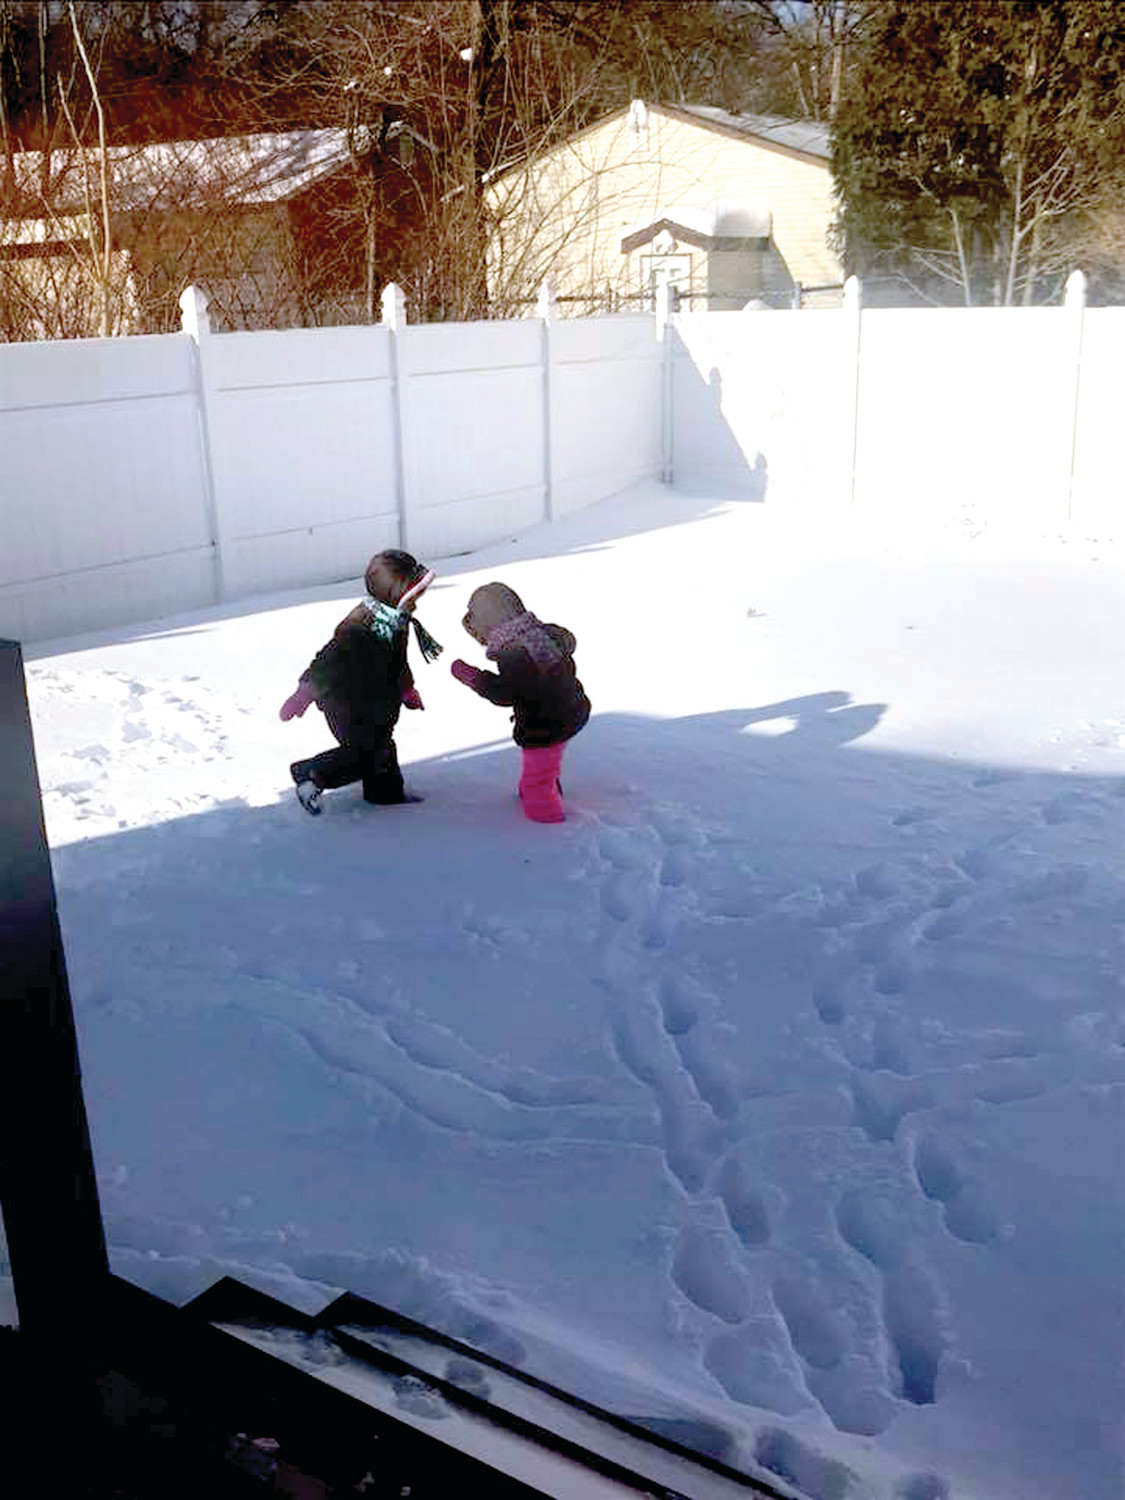 UP TO THEIR KNEES: Ryleigh and Hailey Kimball found fun and more in their backyard following last week's snowstorm. (Submitted photo by Lindsay Smith Kimball)